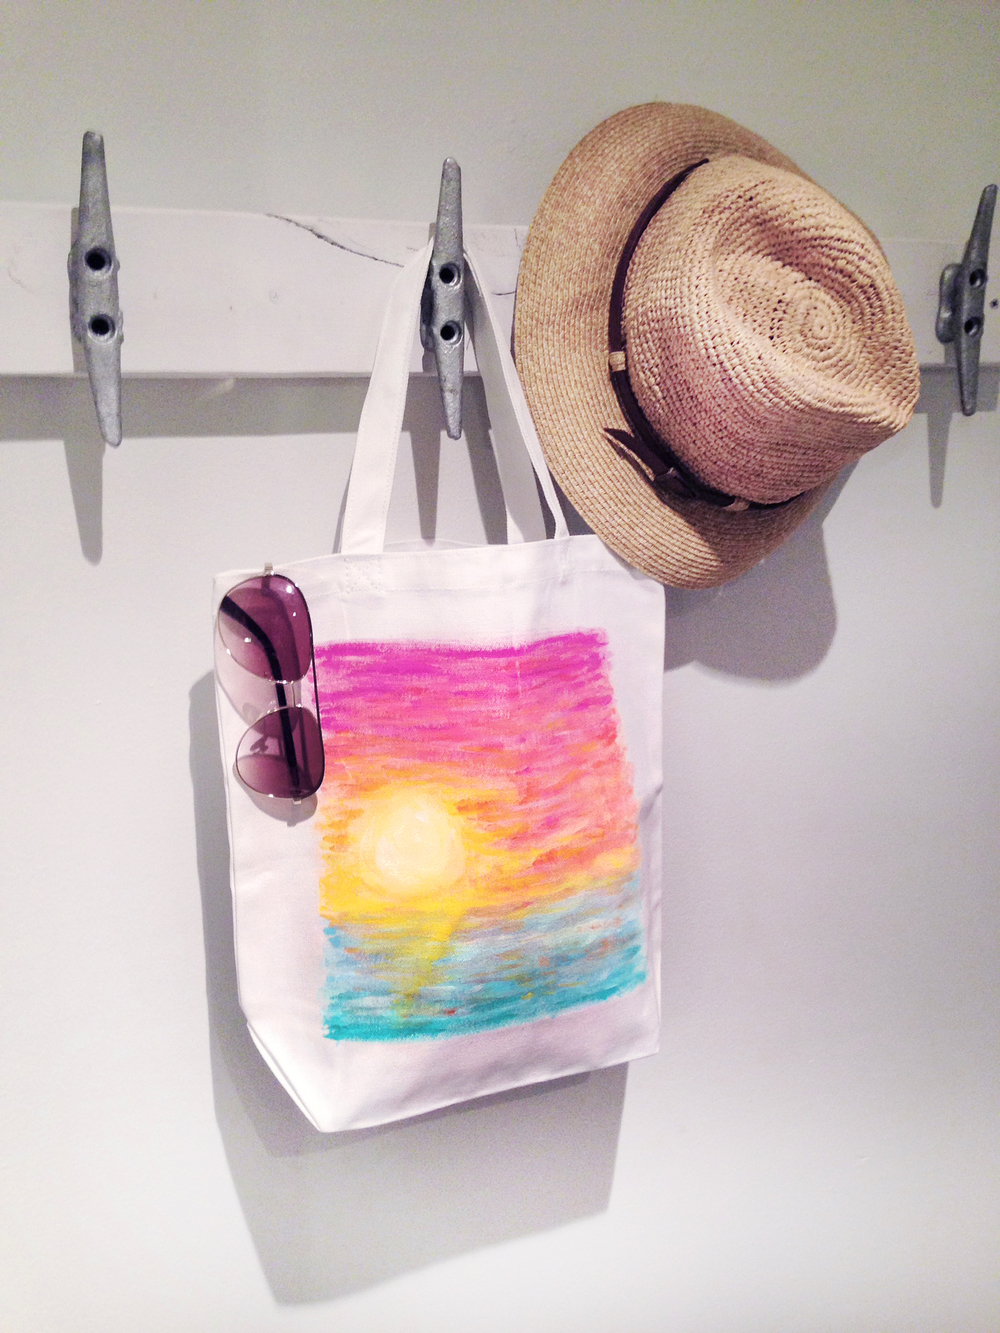 Tropical Sunset Tote Bag | Acrylic Paint on Canvas Tote | Hello Monday Design